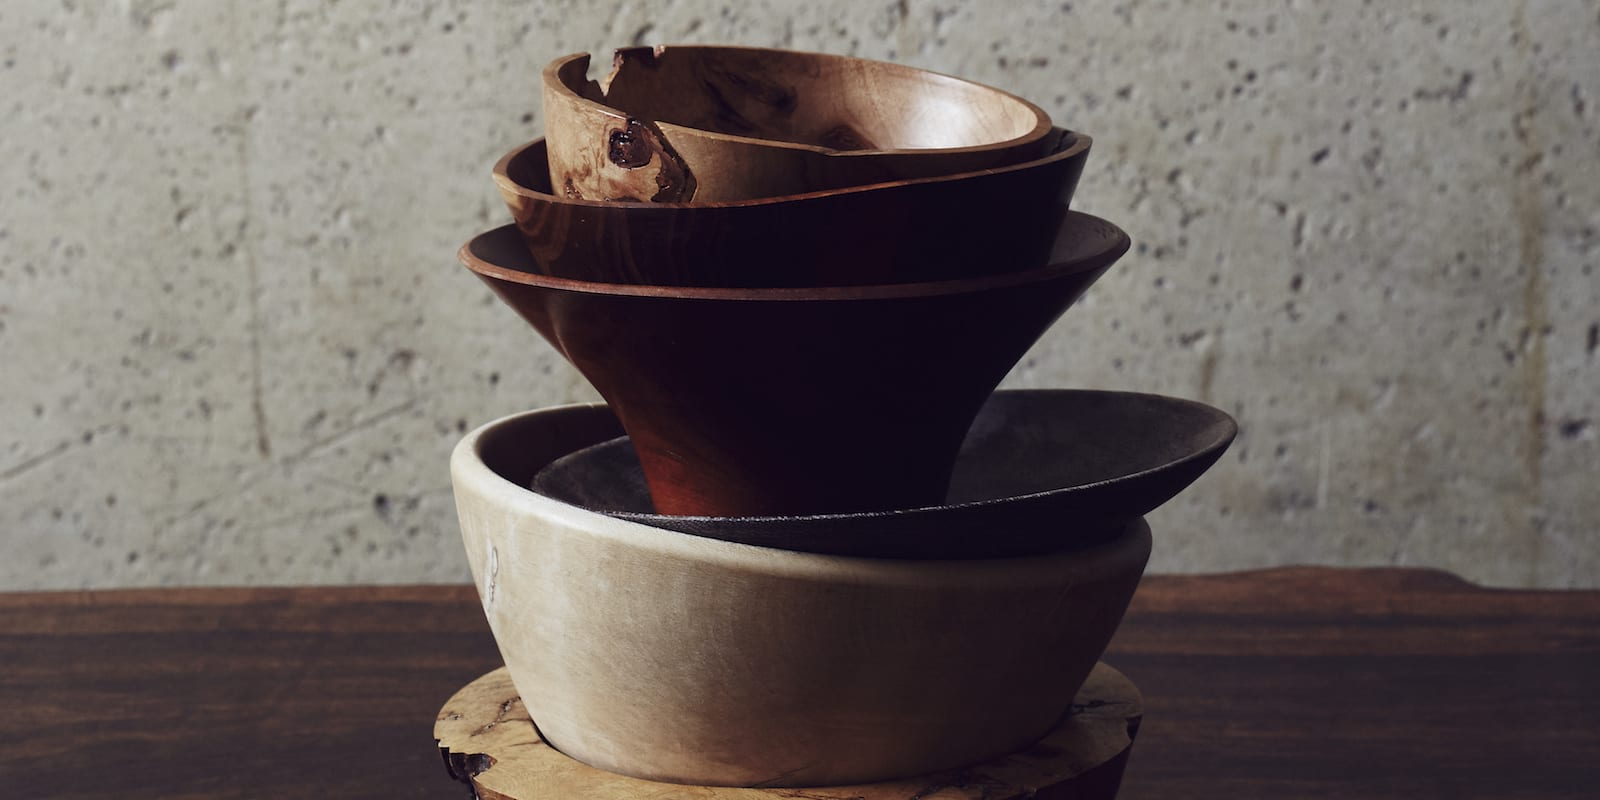 Comfort Food Vessels from Southern Artisans